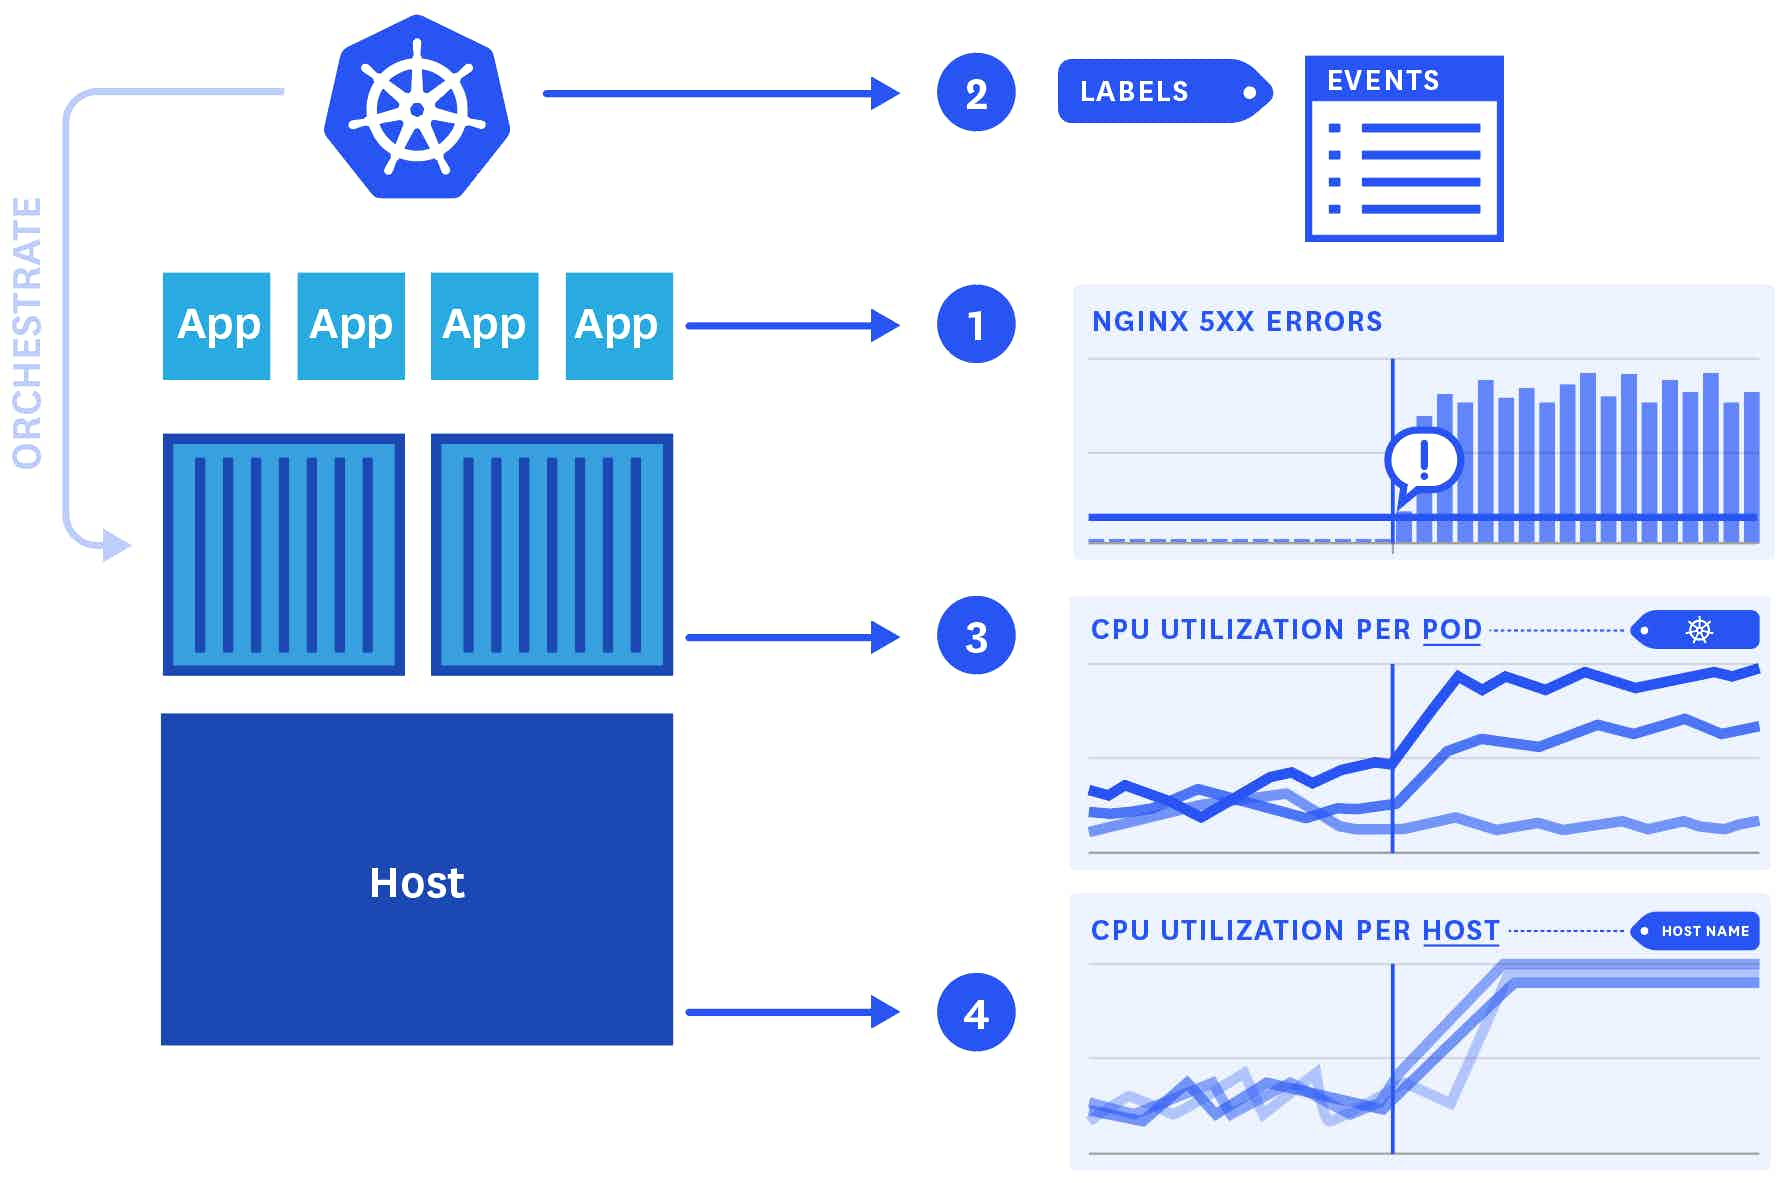 Kubernetes monitoring use case